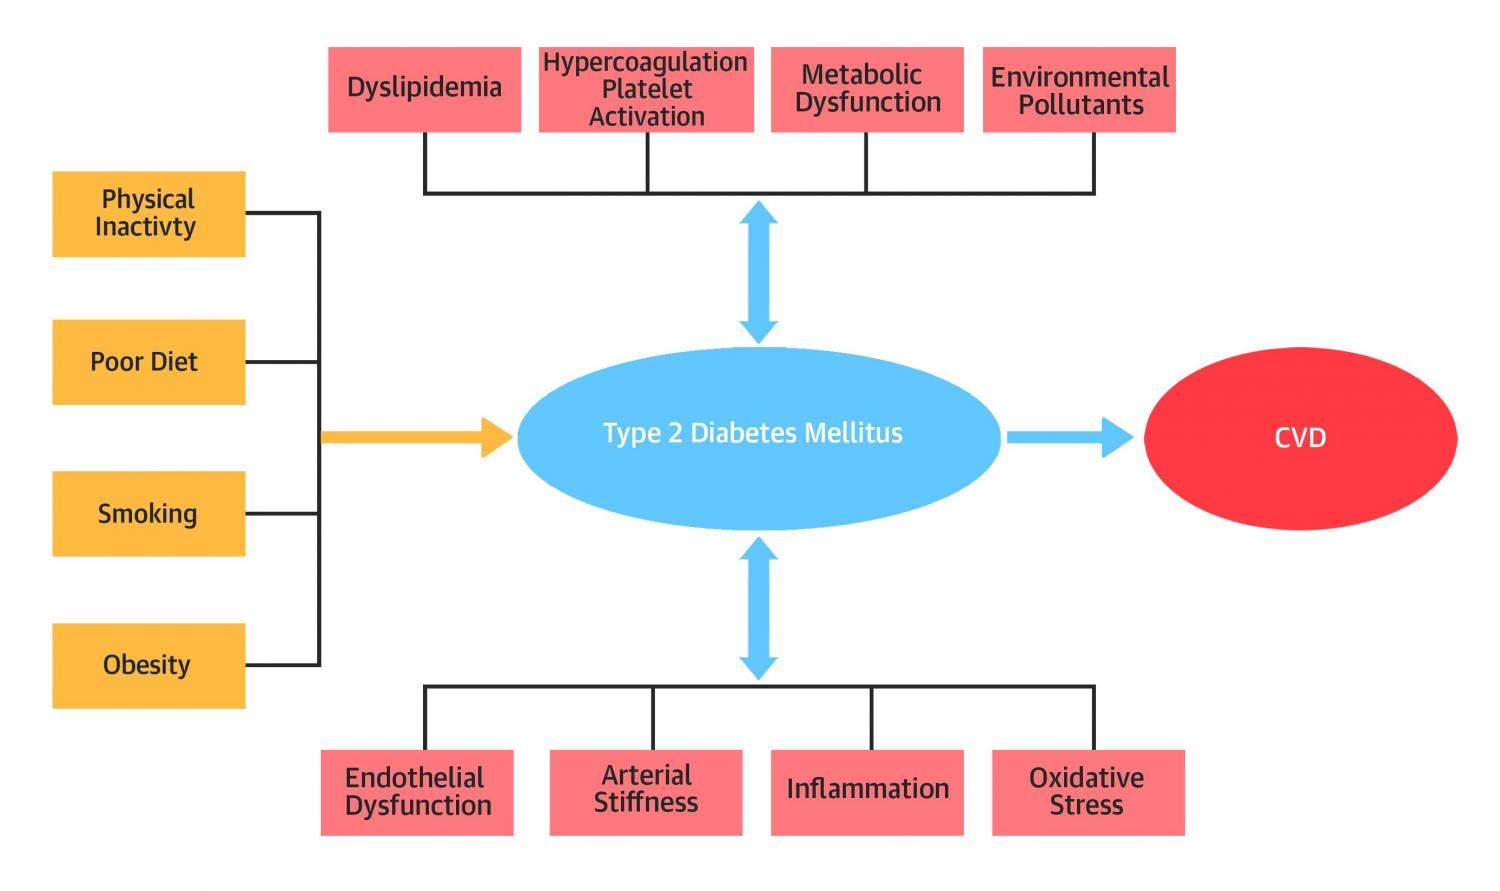 Prevention could reduce heart disease among type 2 diabetes patients primary prevention could reduce heart disease among type 2 diabetes patients ccuart Choice Image